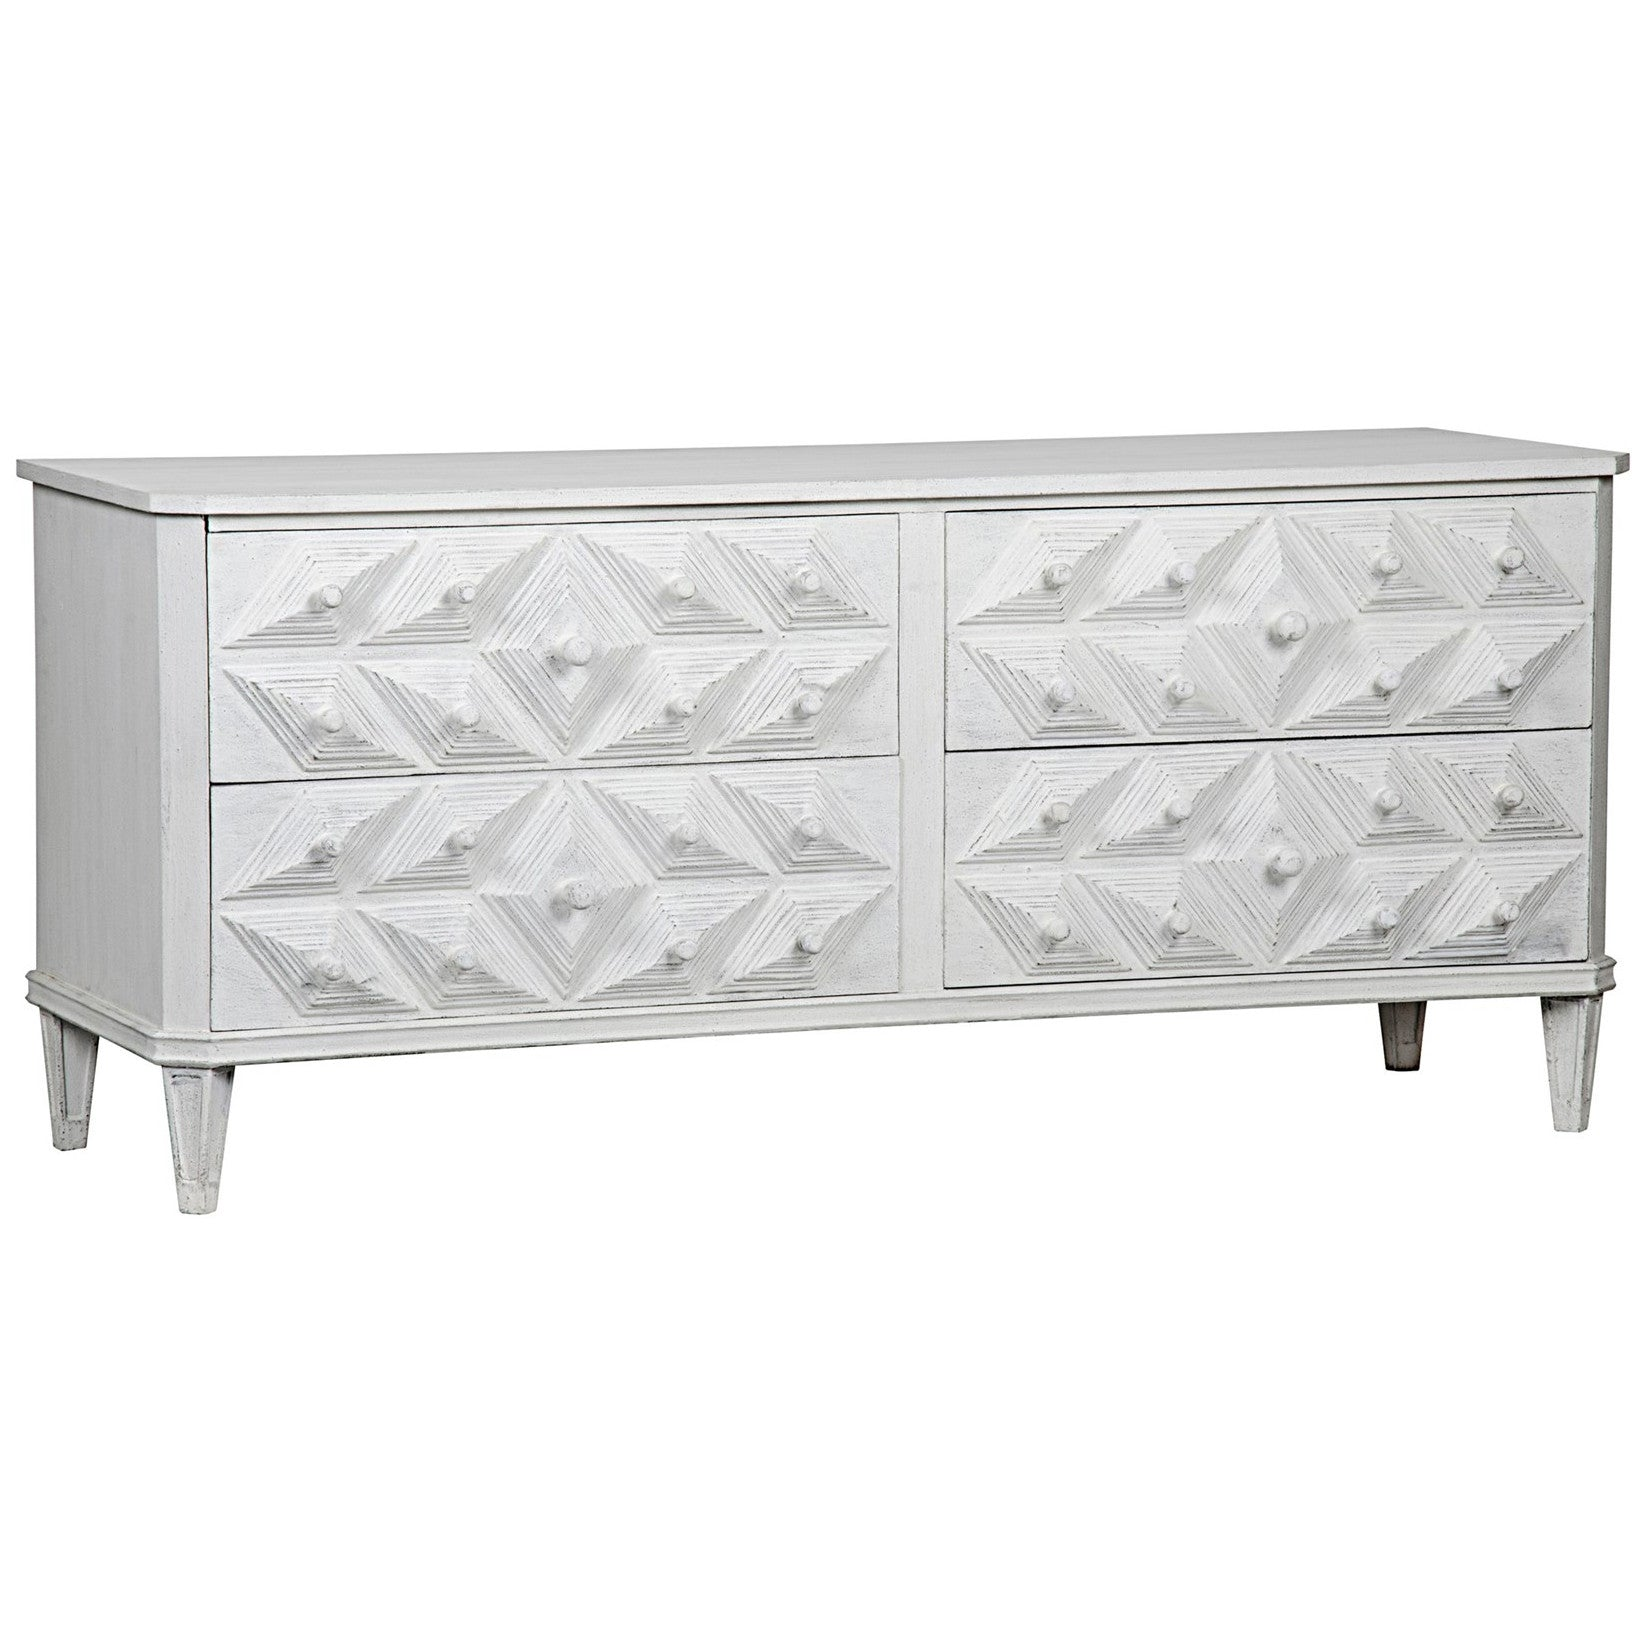 url black chest belmont dresser essential getimage your home shop white shld drawer